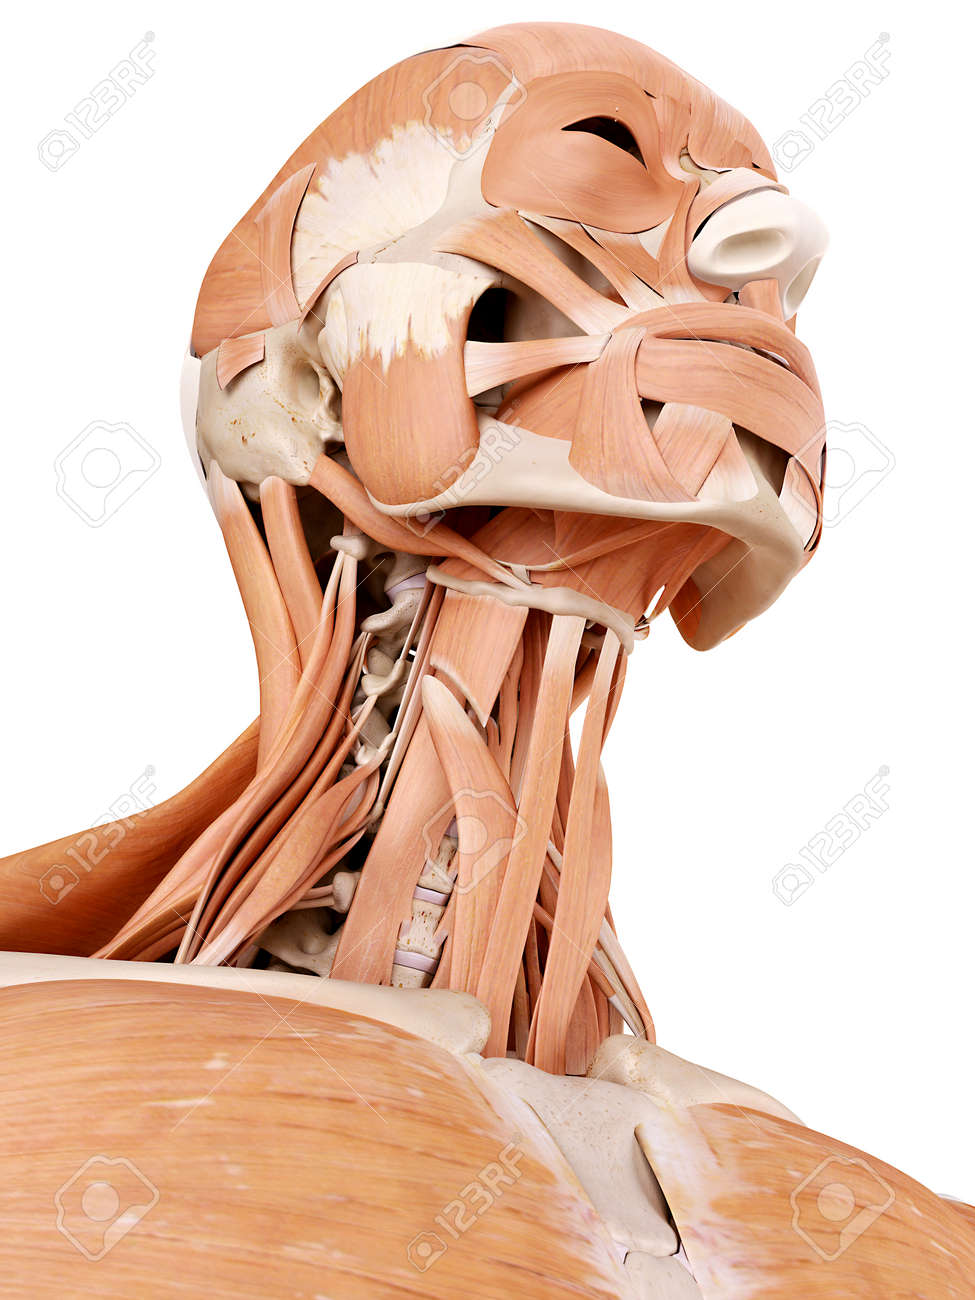 Medically Accurate Anatomy Illustration - Neck Muscles Stock Photo ...